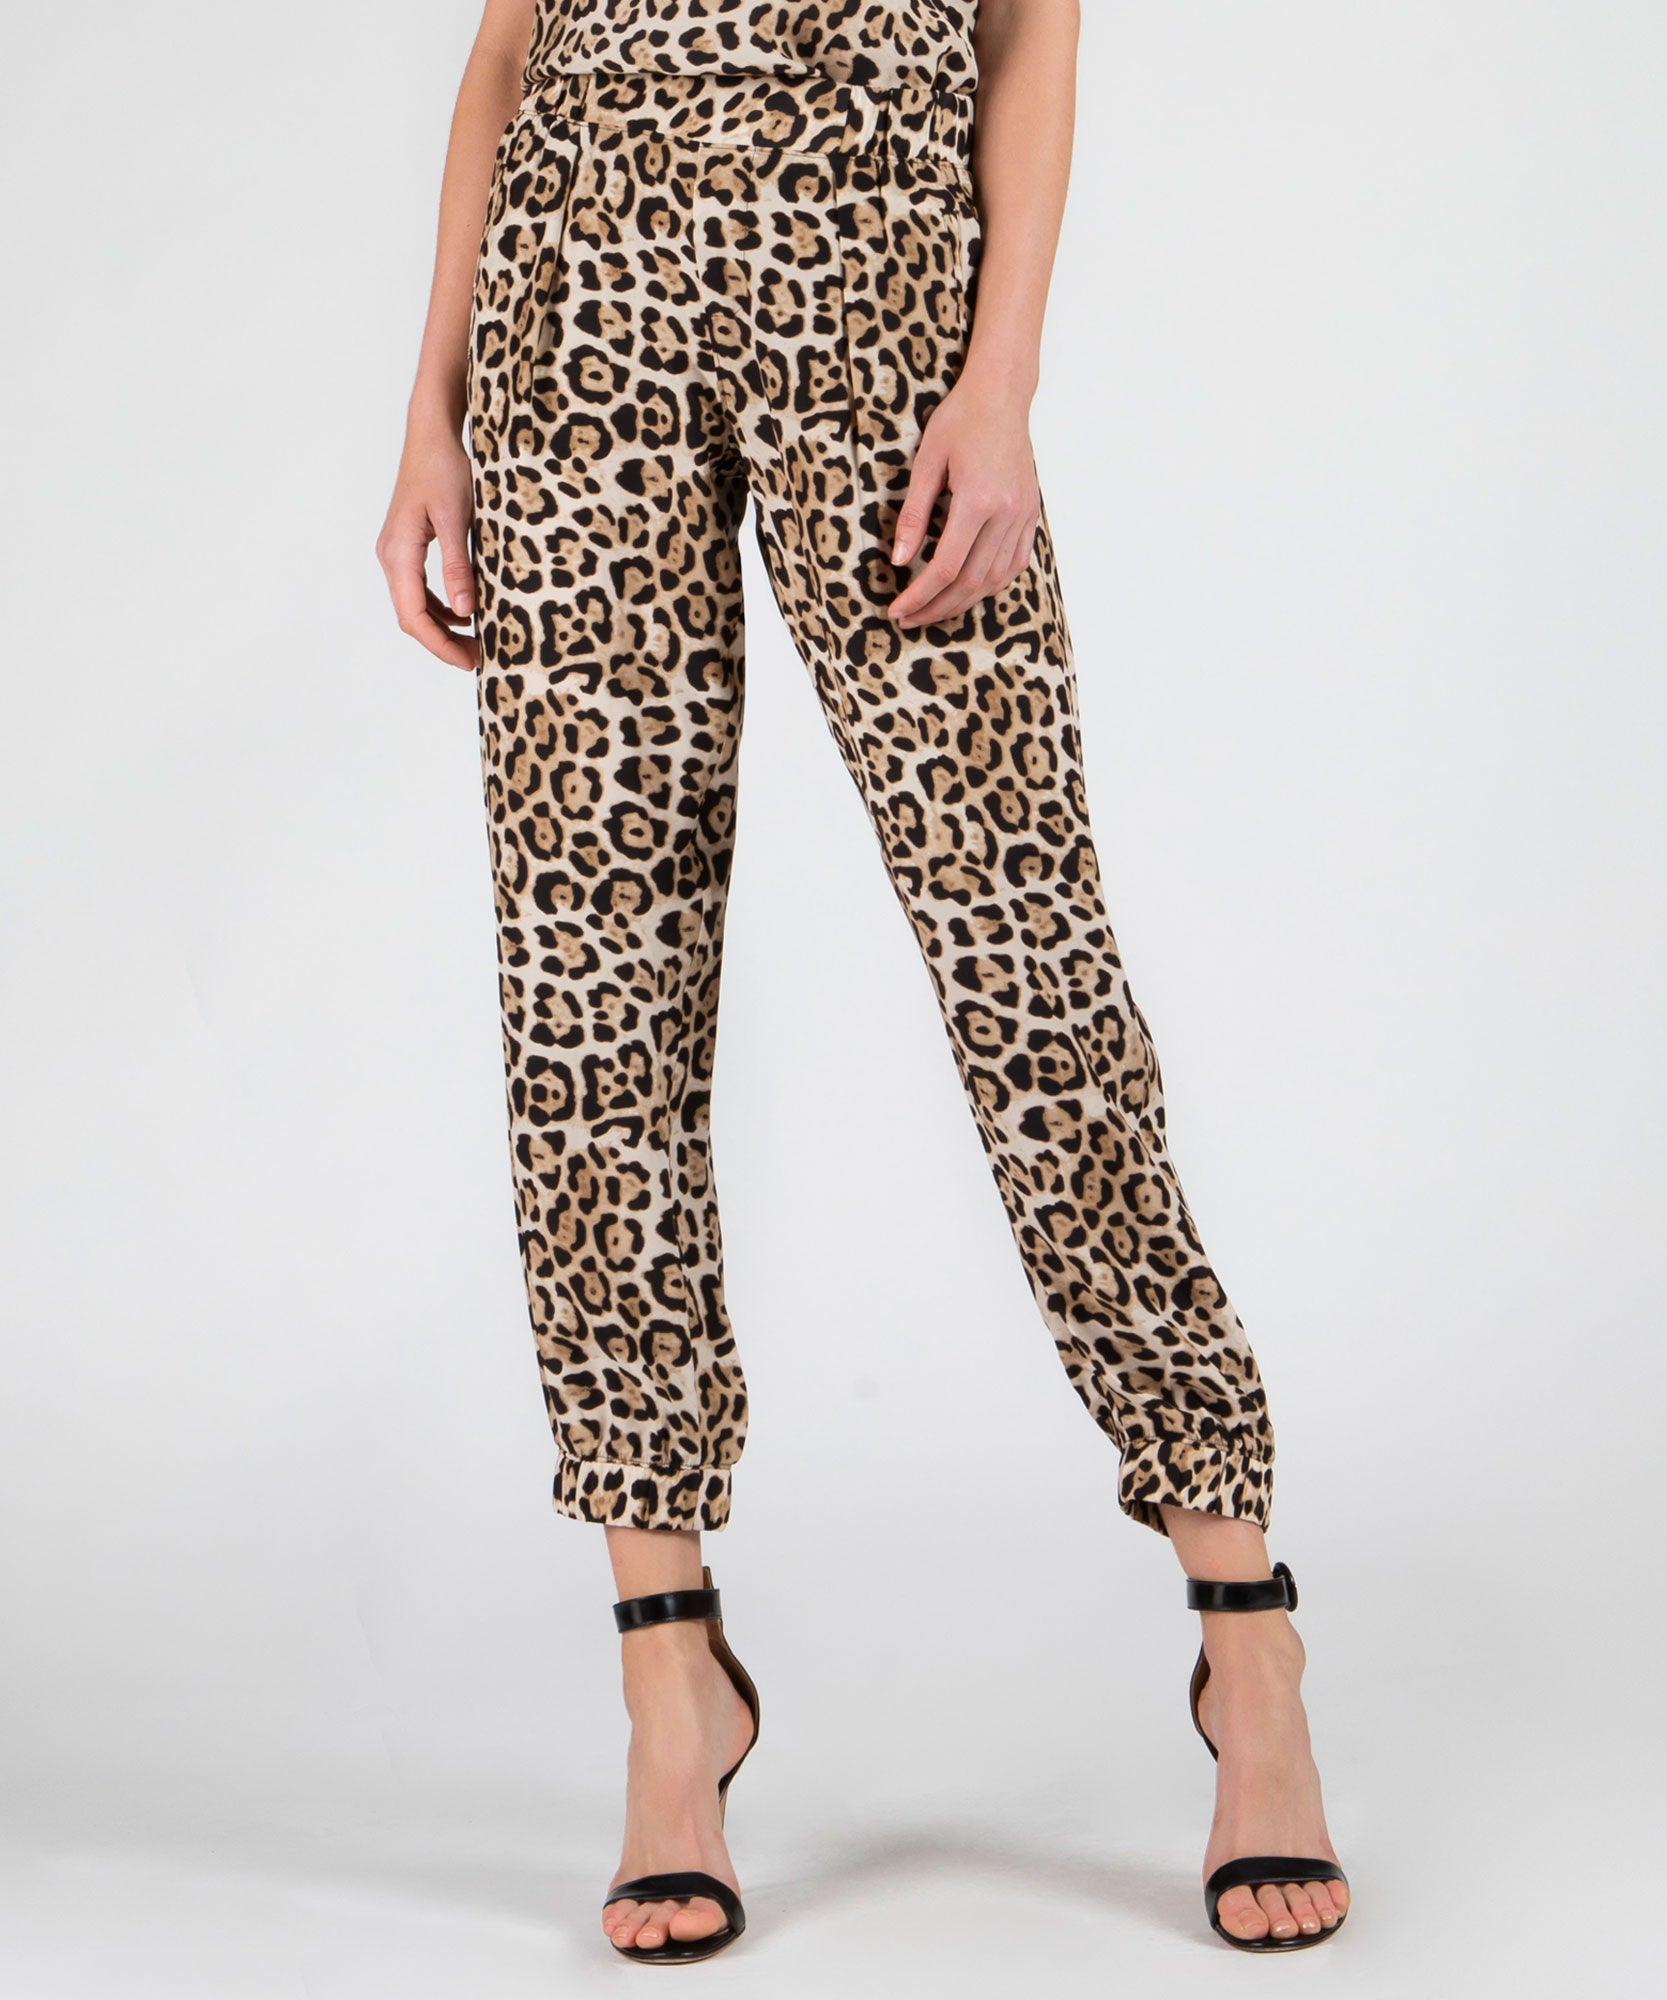 Leopard Silk Sweatpants - Women's Silk Pants by ATM Anthony Thomas Melillo